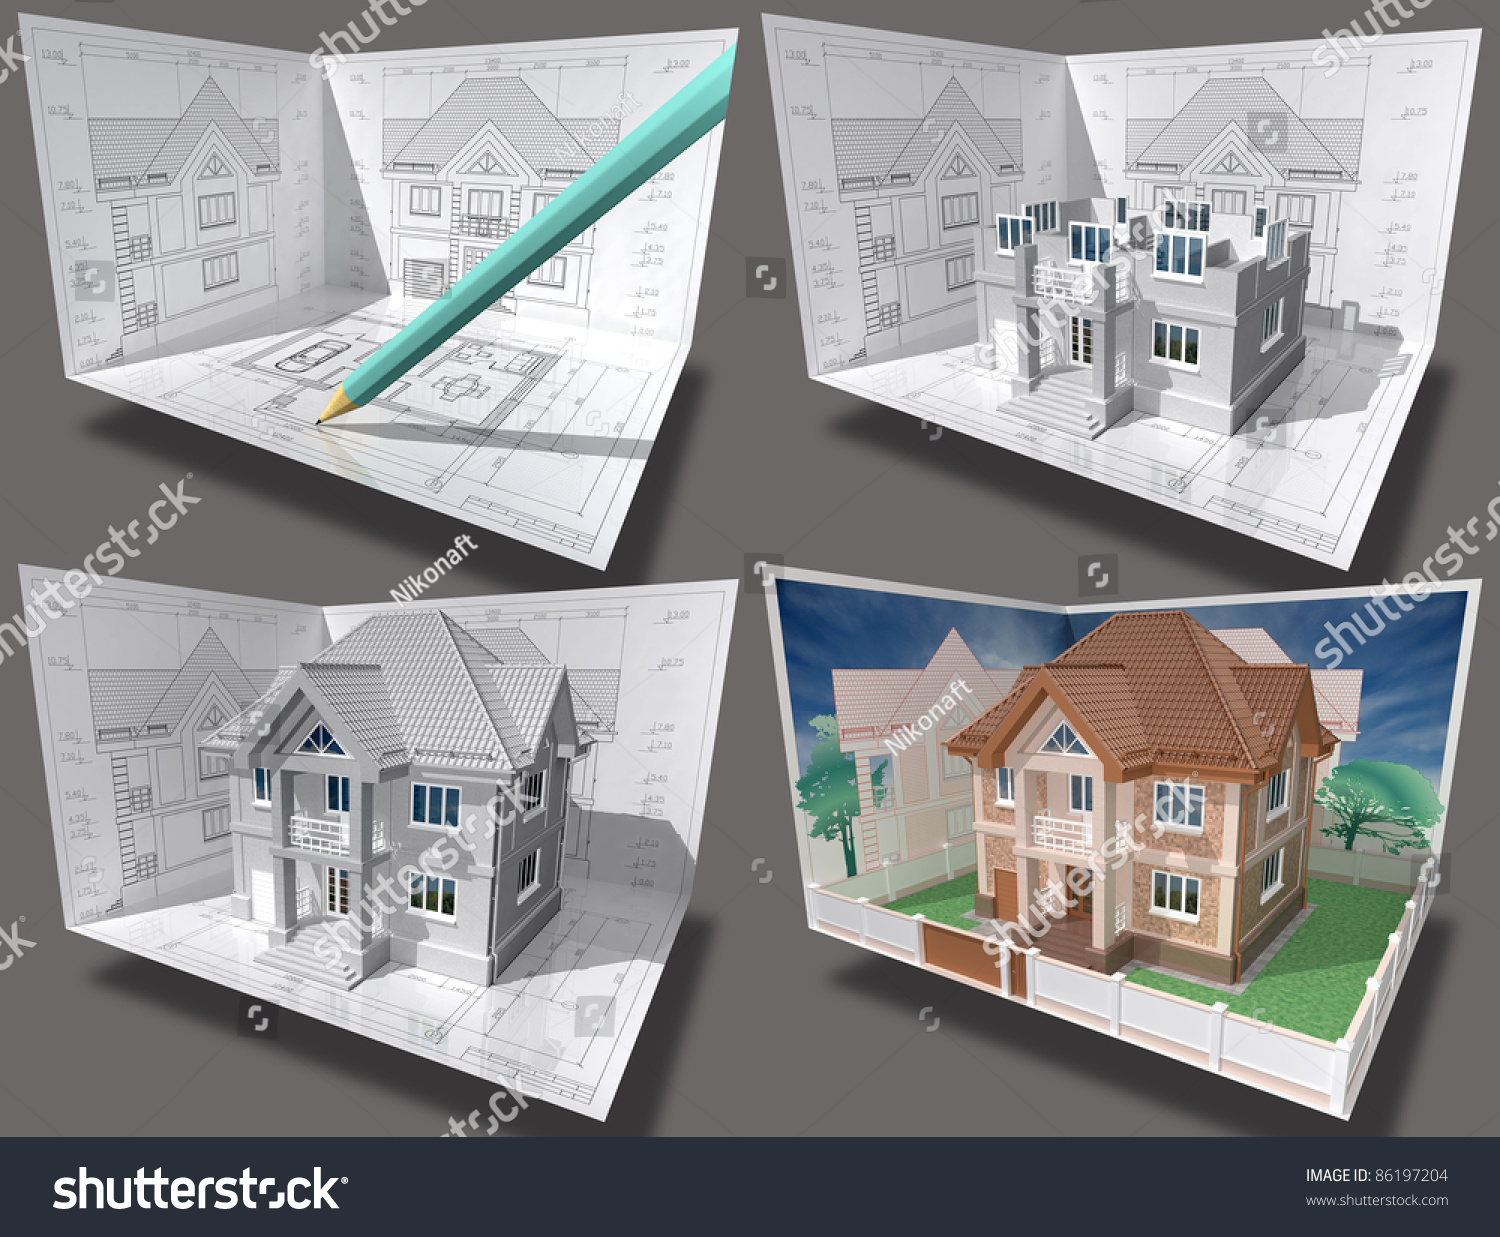 cottage under construction  3d isometric view of